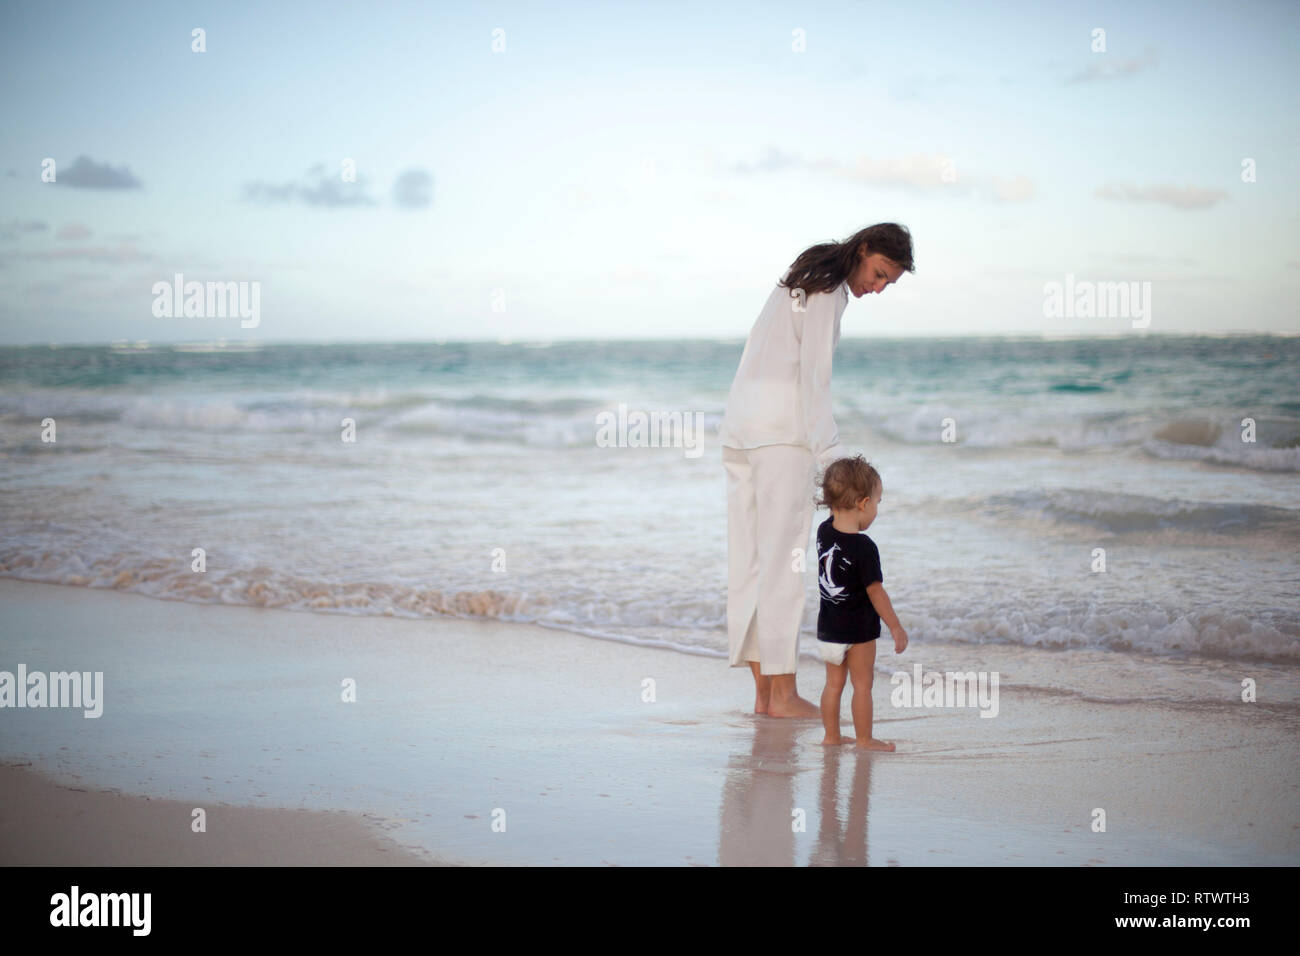 On sunset sand beach mother and little baby explores the ocean - Stock Image